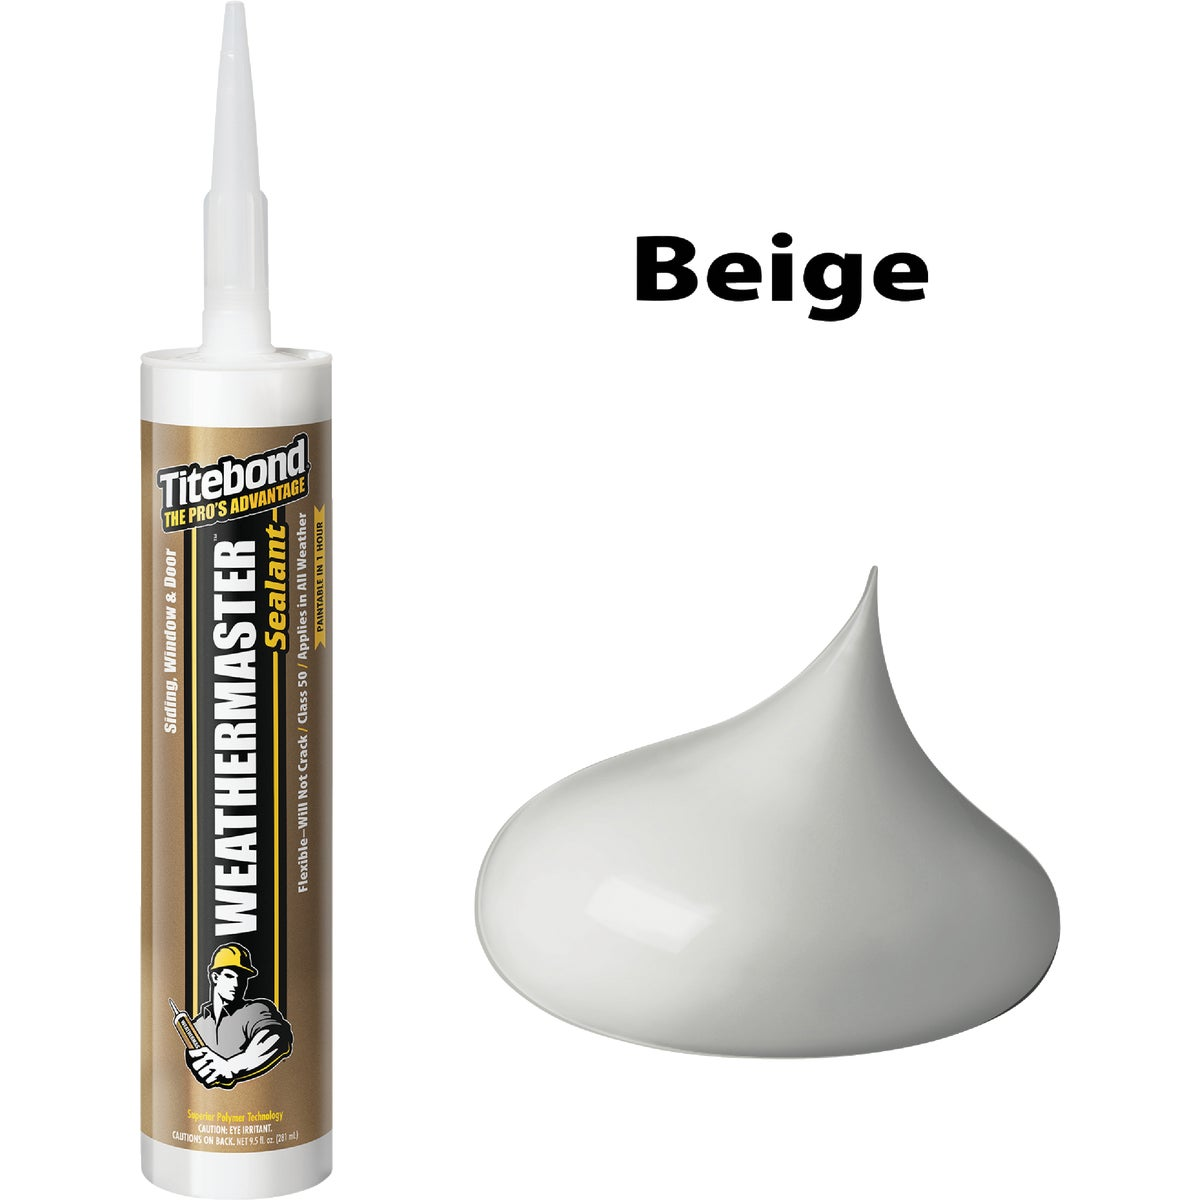 10 OZ WM BEIGE SEALANT - 46031 by Franklin Interl